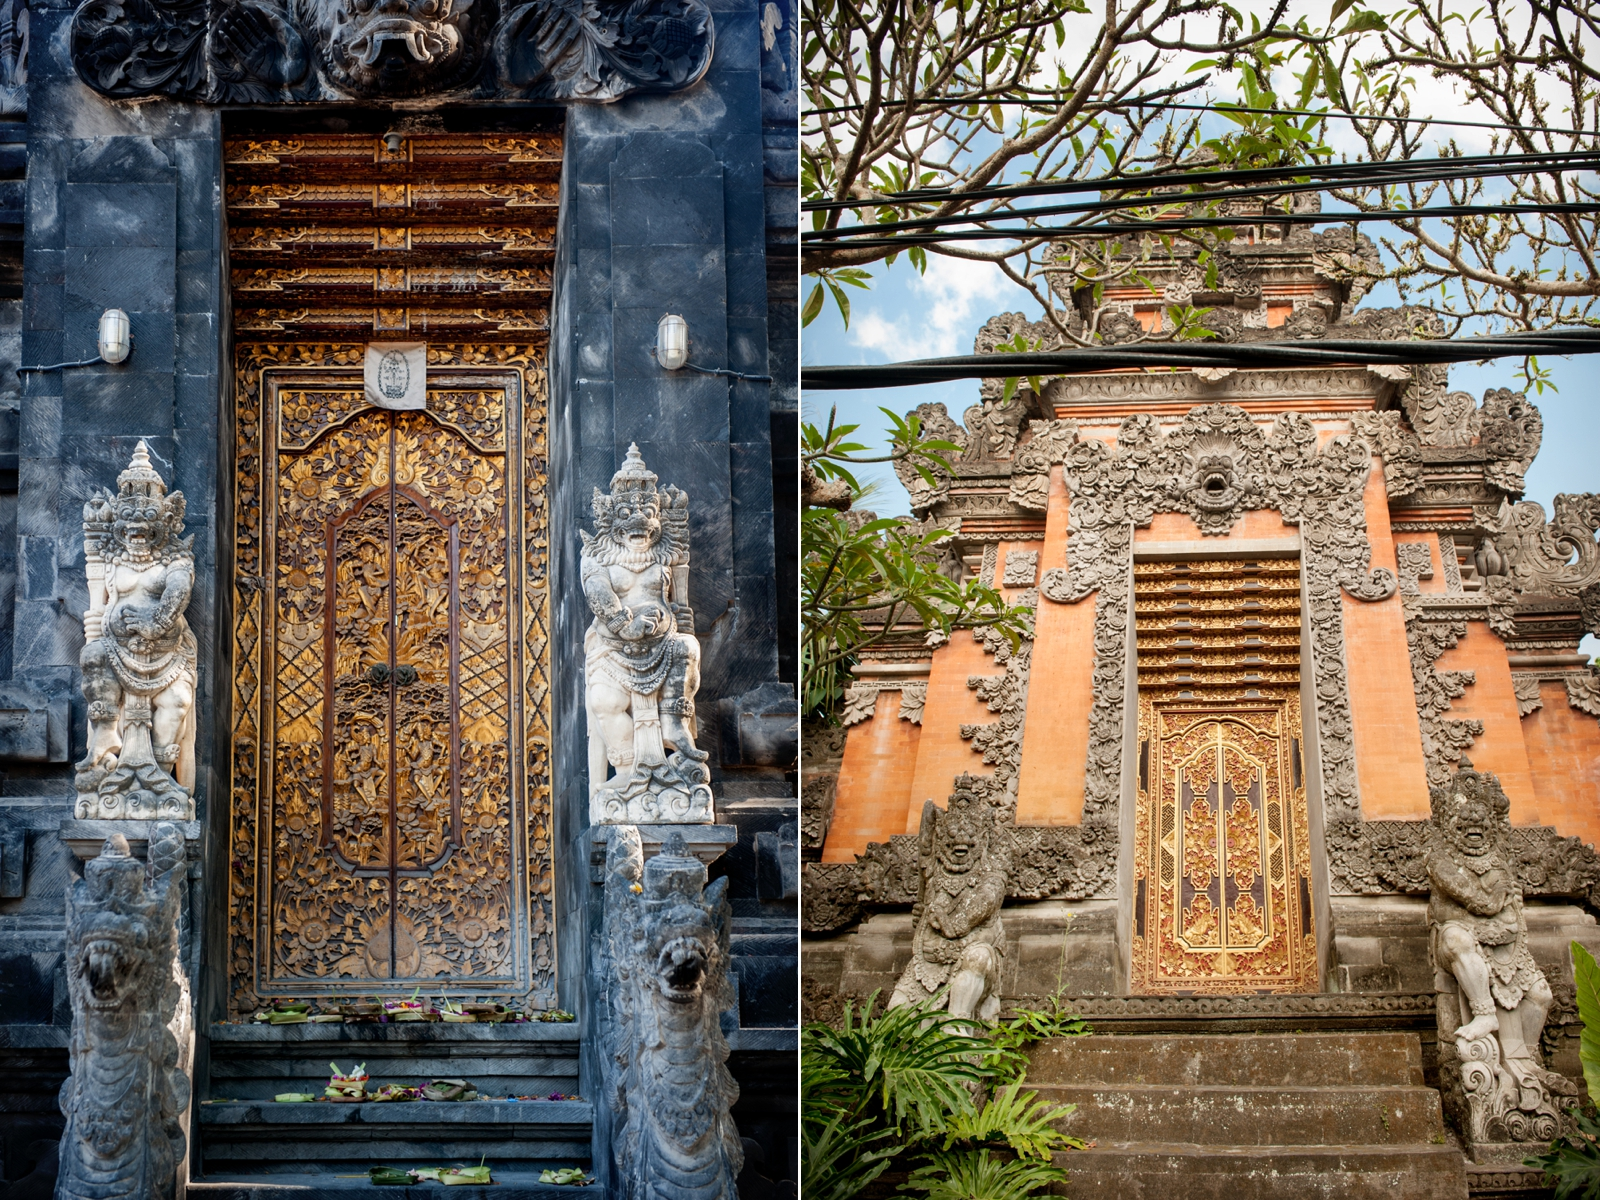 Balinese-Doors-South-Africa-Travel-Photographer-Jacki-Bruniquel-001